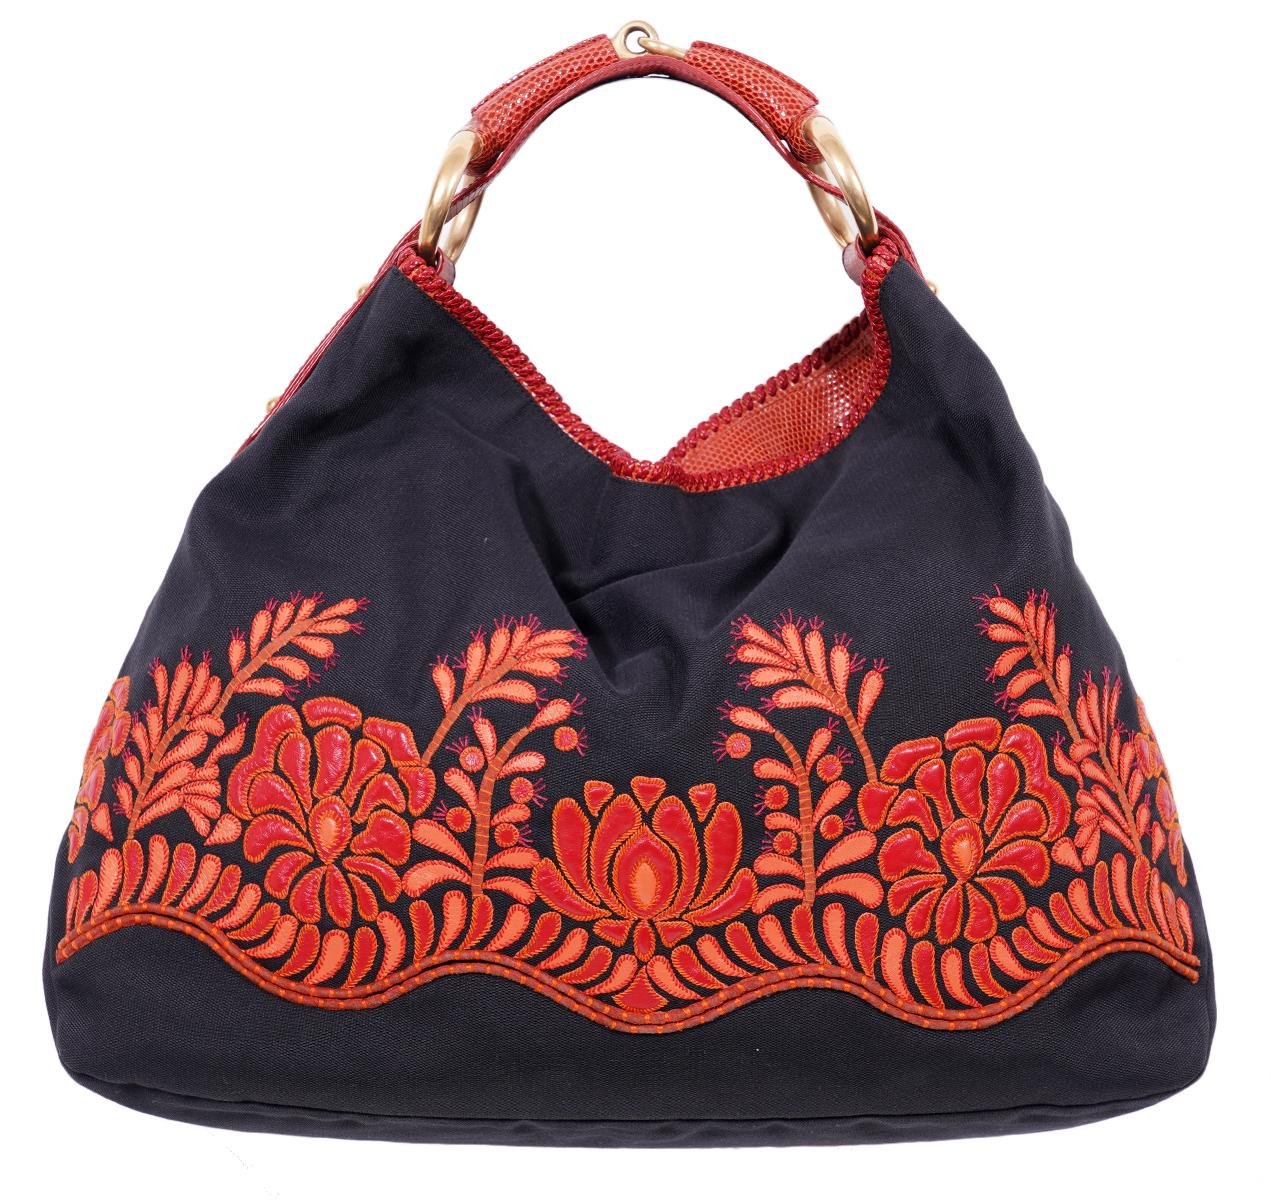 Gucci Runway Tote Red Snakeskin Applique Bag